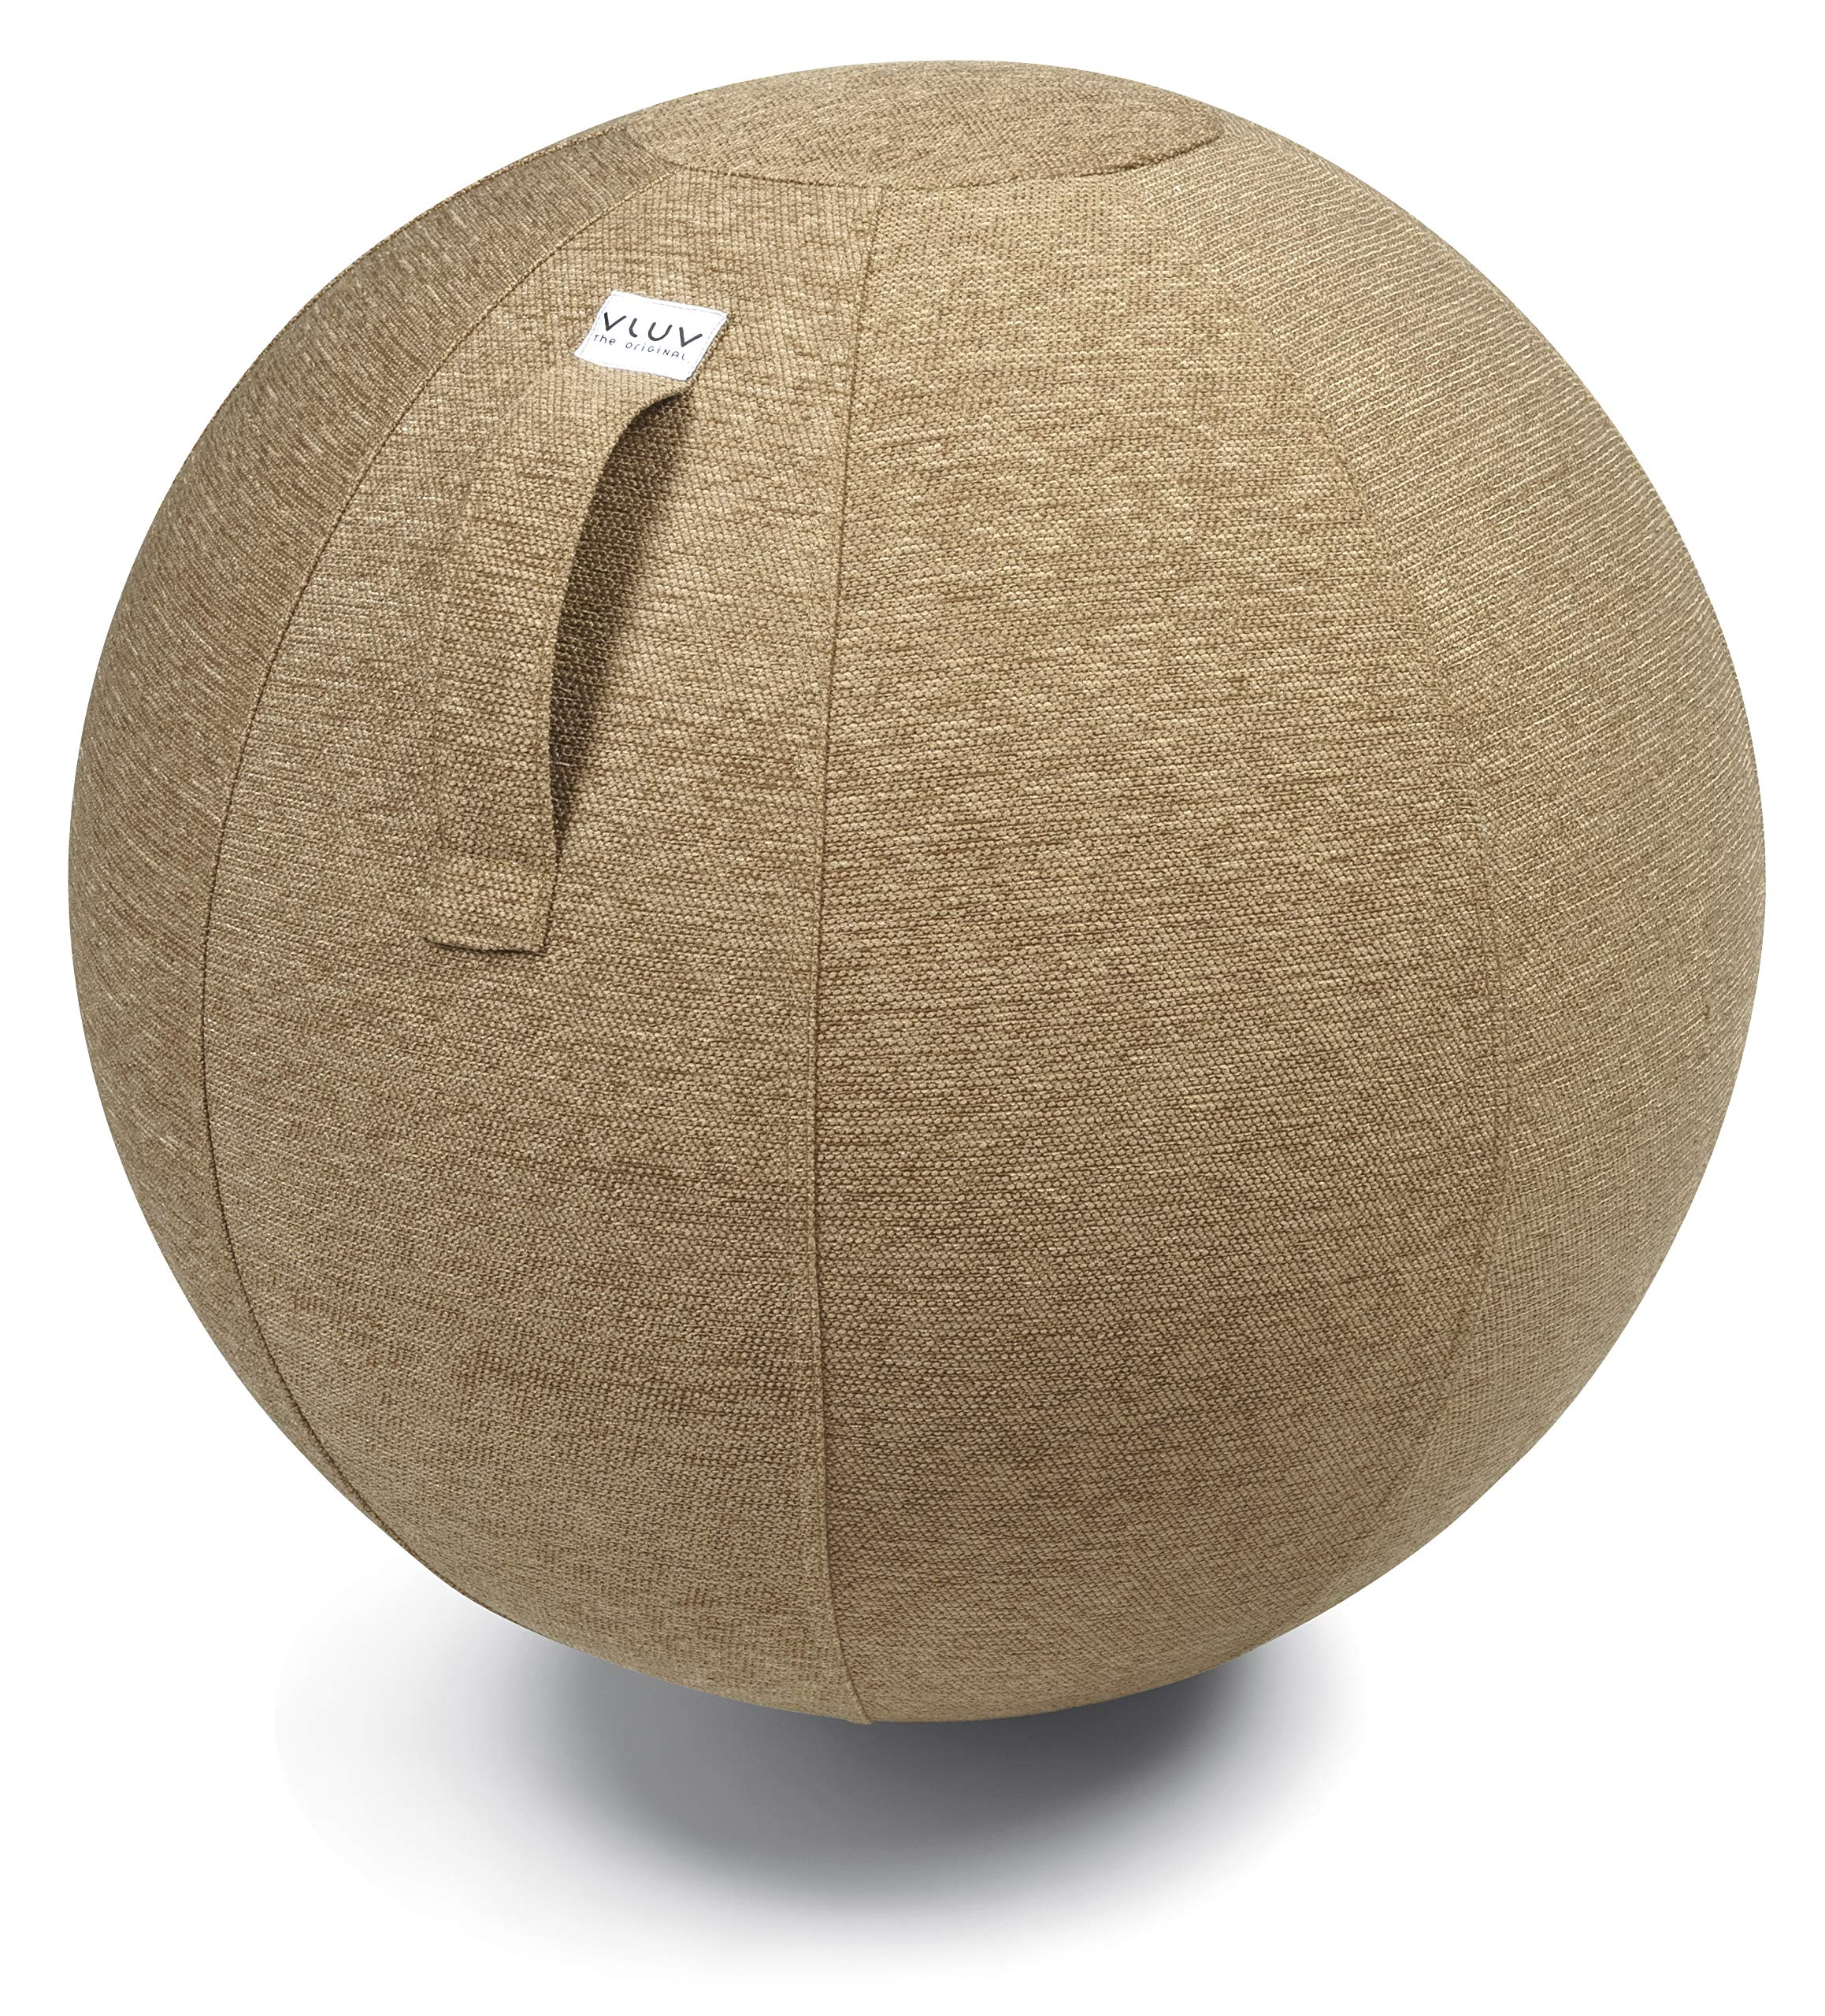 VLUV STOV Premium Quality Self-Standing Sitting Ball with Handle - Home or Office Chair and Exercise Ball for Yoga, Back Stretching, or Gym- Upholstery Fabric Stability Ball (Macchiato, 25.6'')